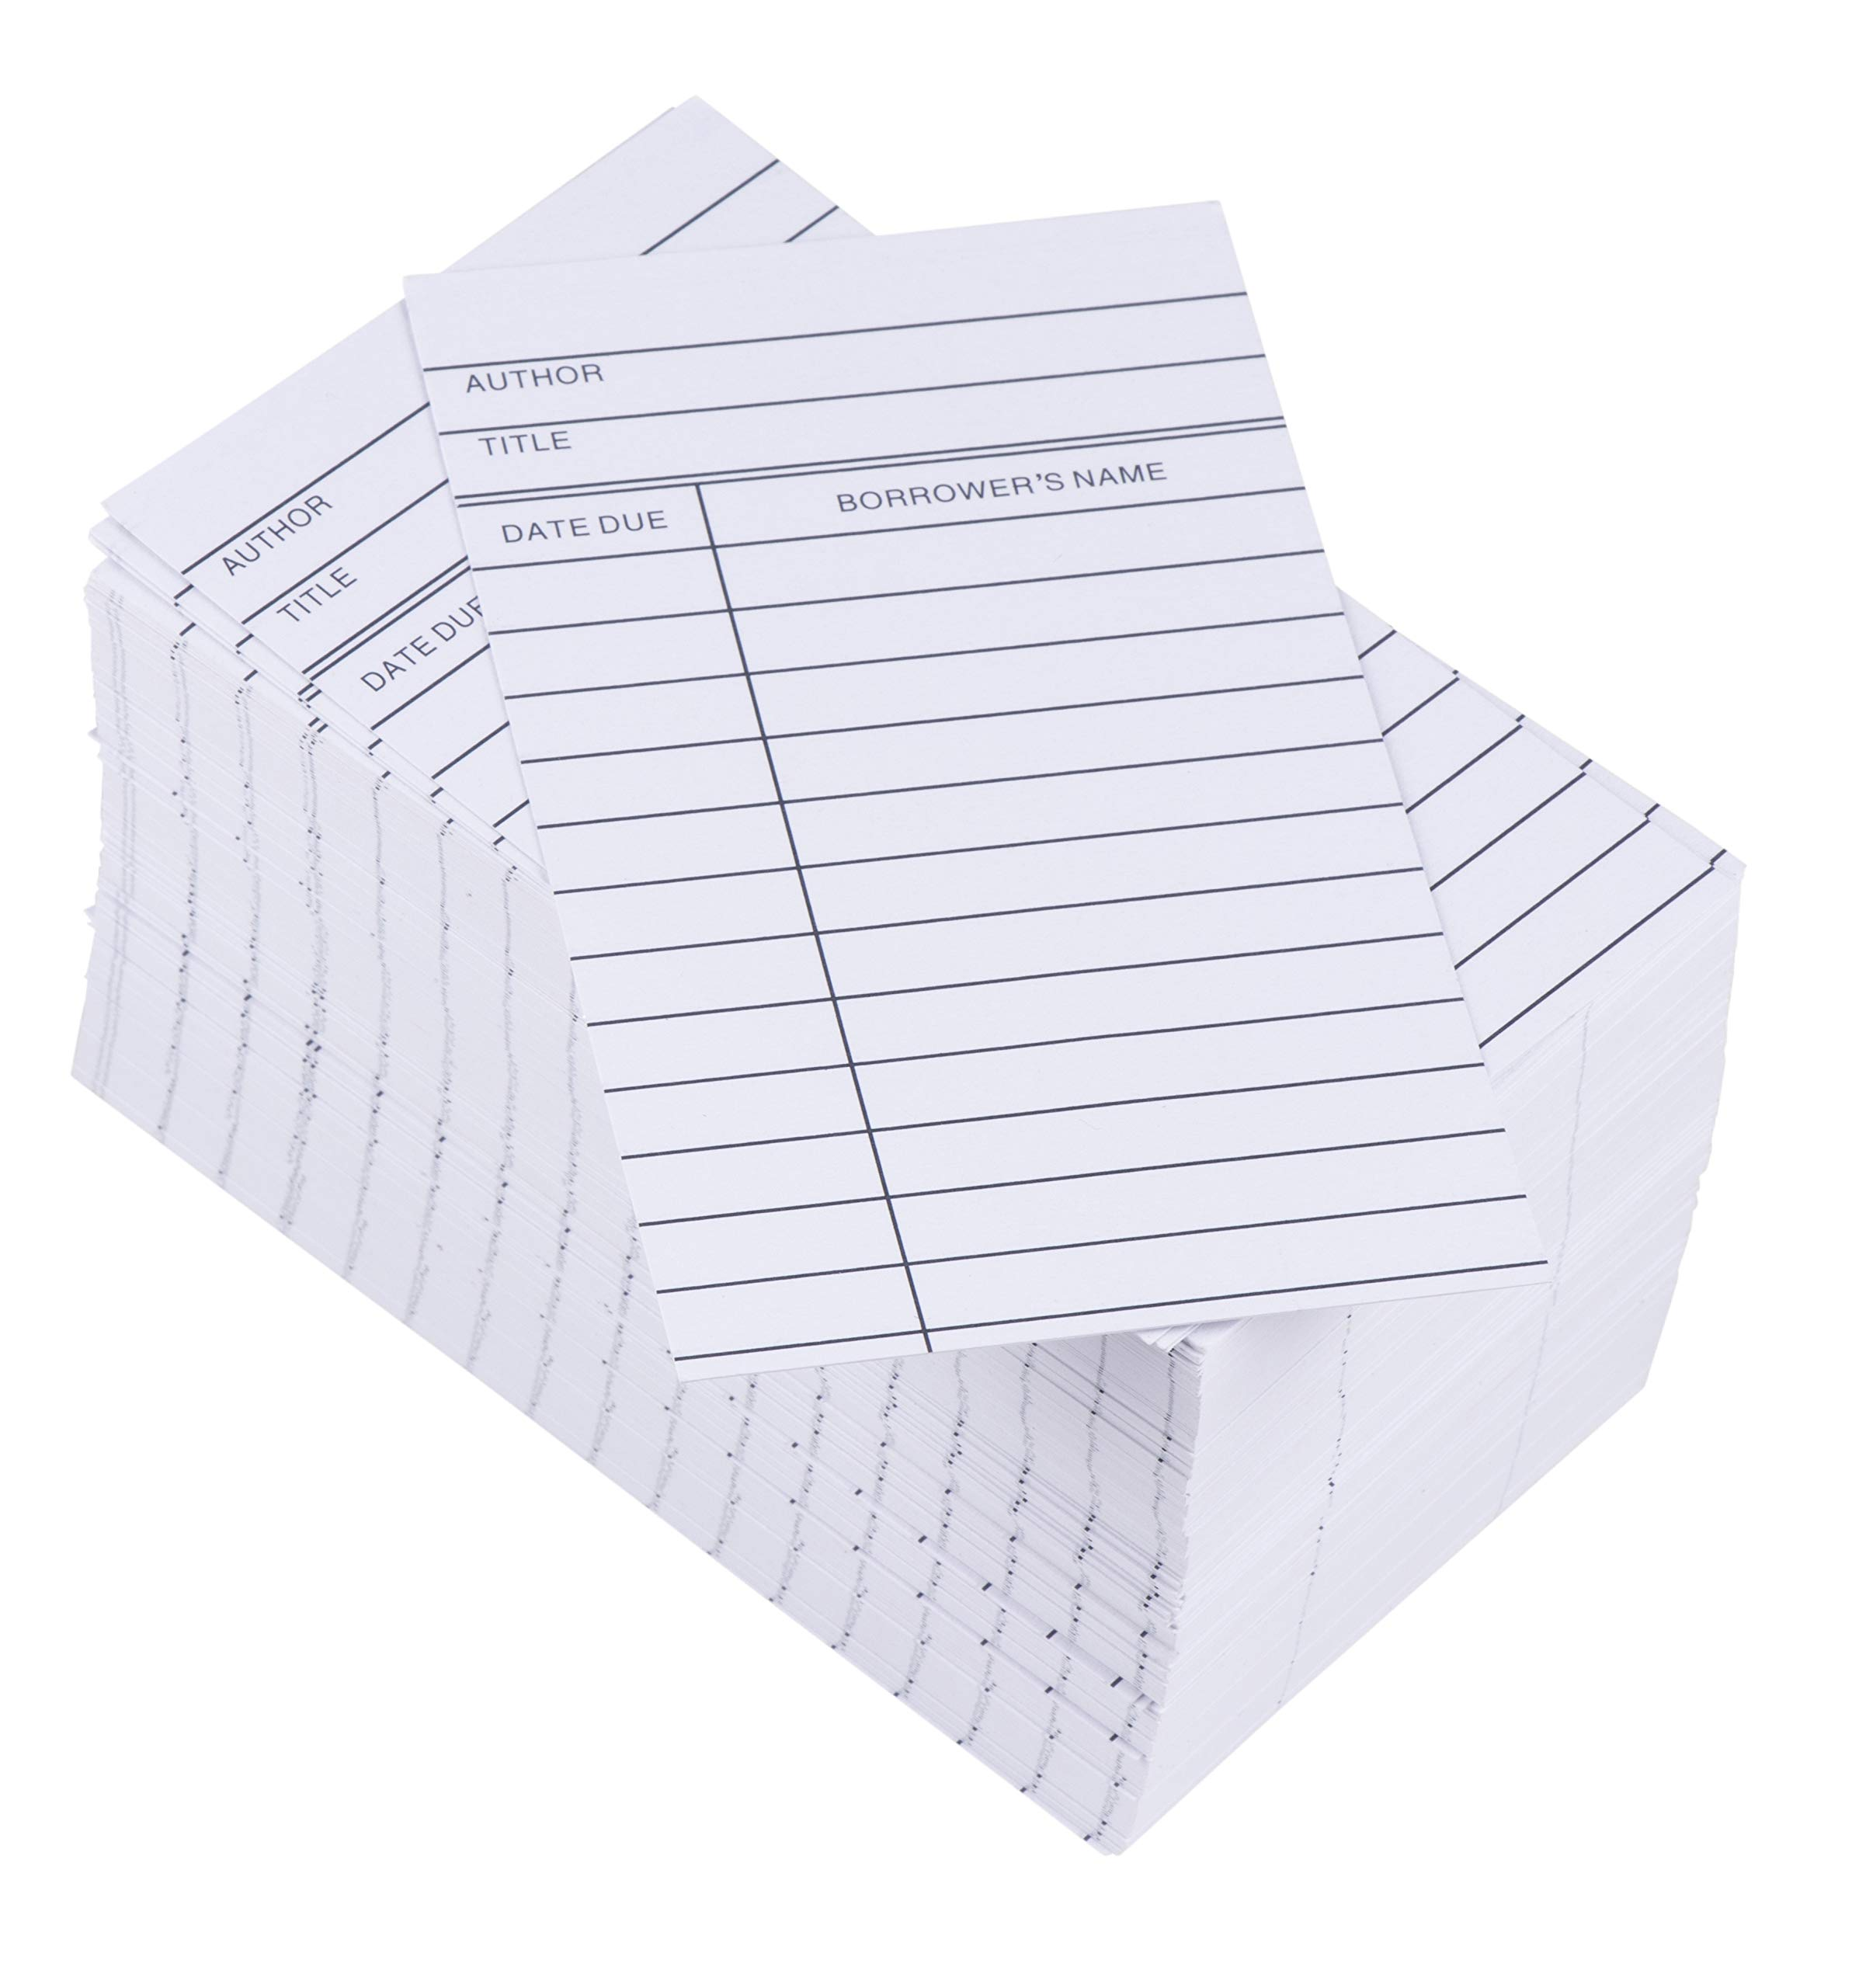 Library Cards - 250-Count Library Checkout Cards, Due Date Note Cards for School, Public Library Record Keeping, Tracking, Book Borrowing, White, 3 x 5 Inches